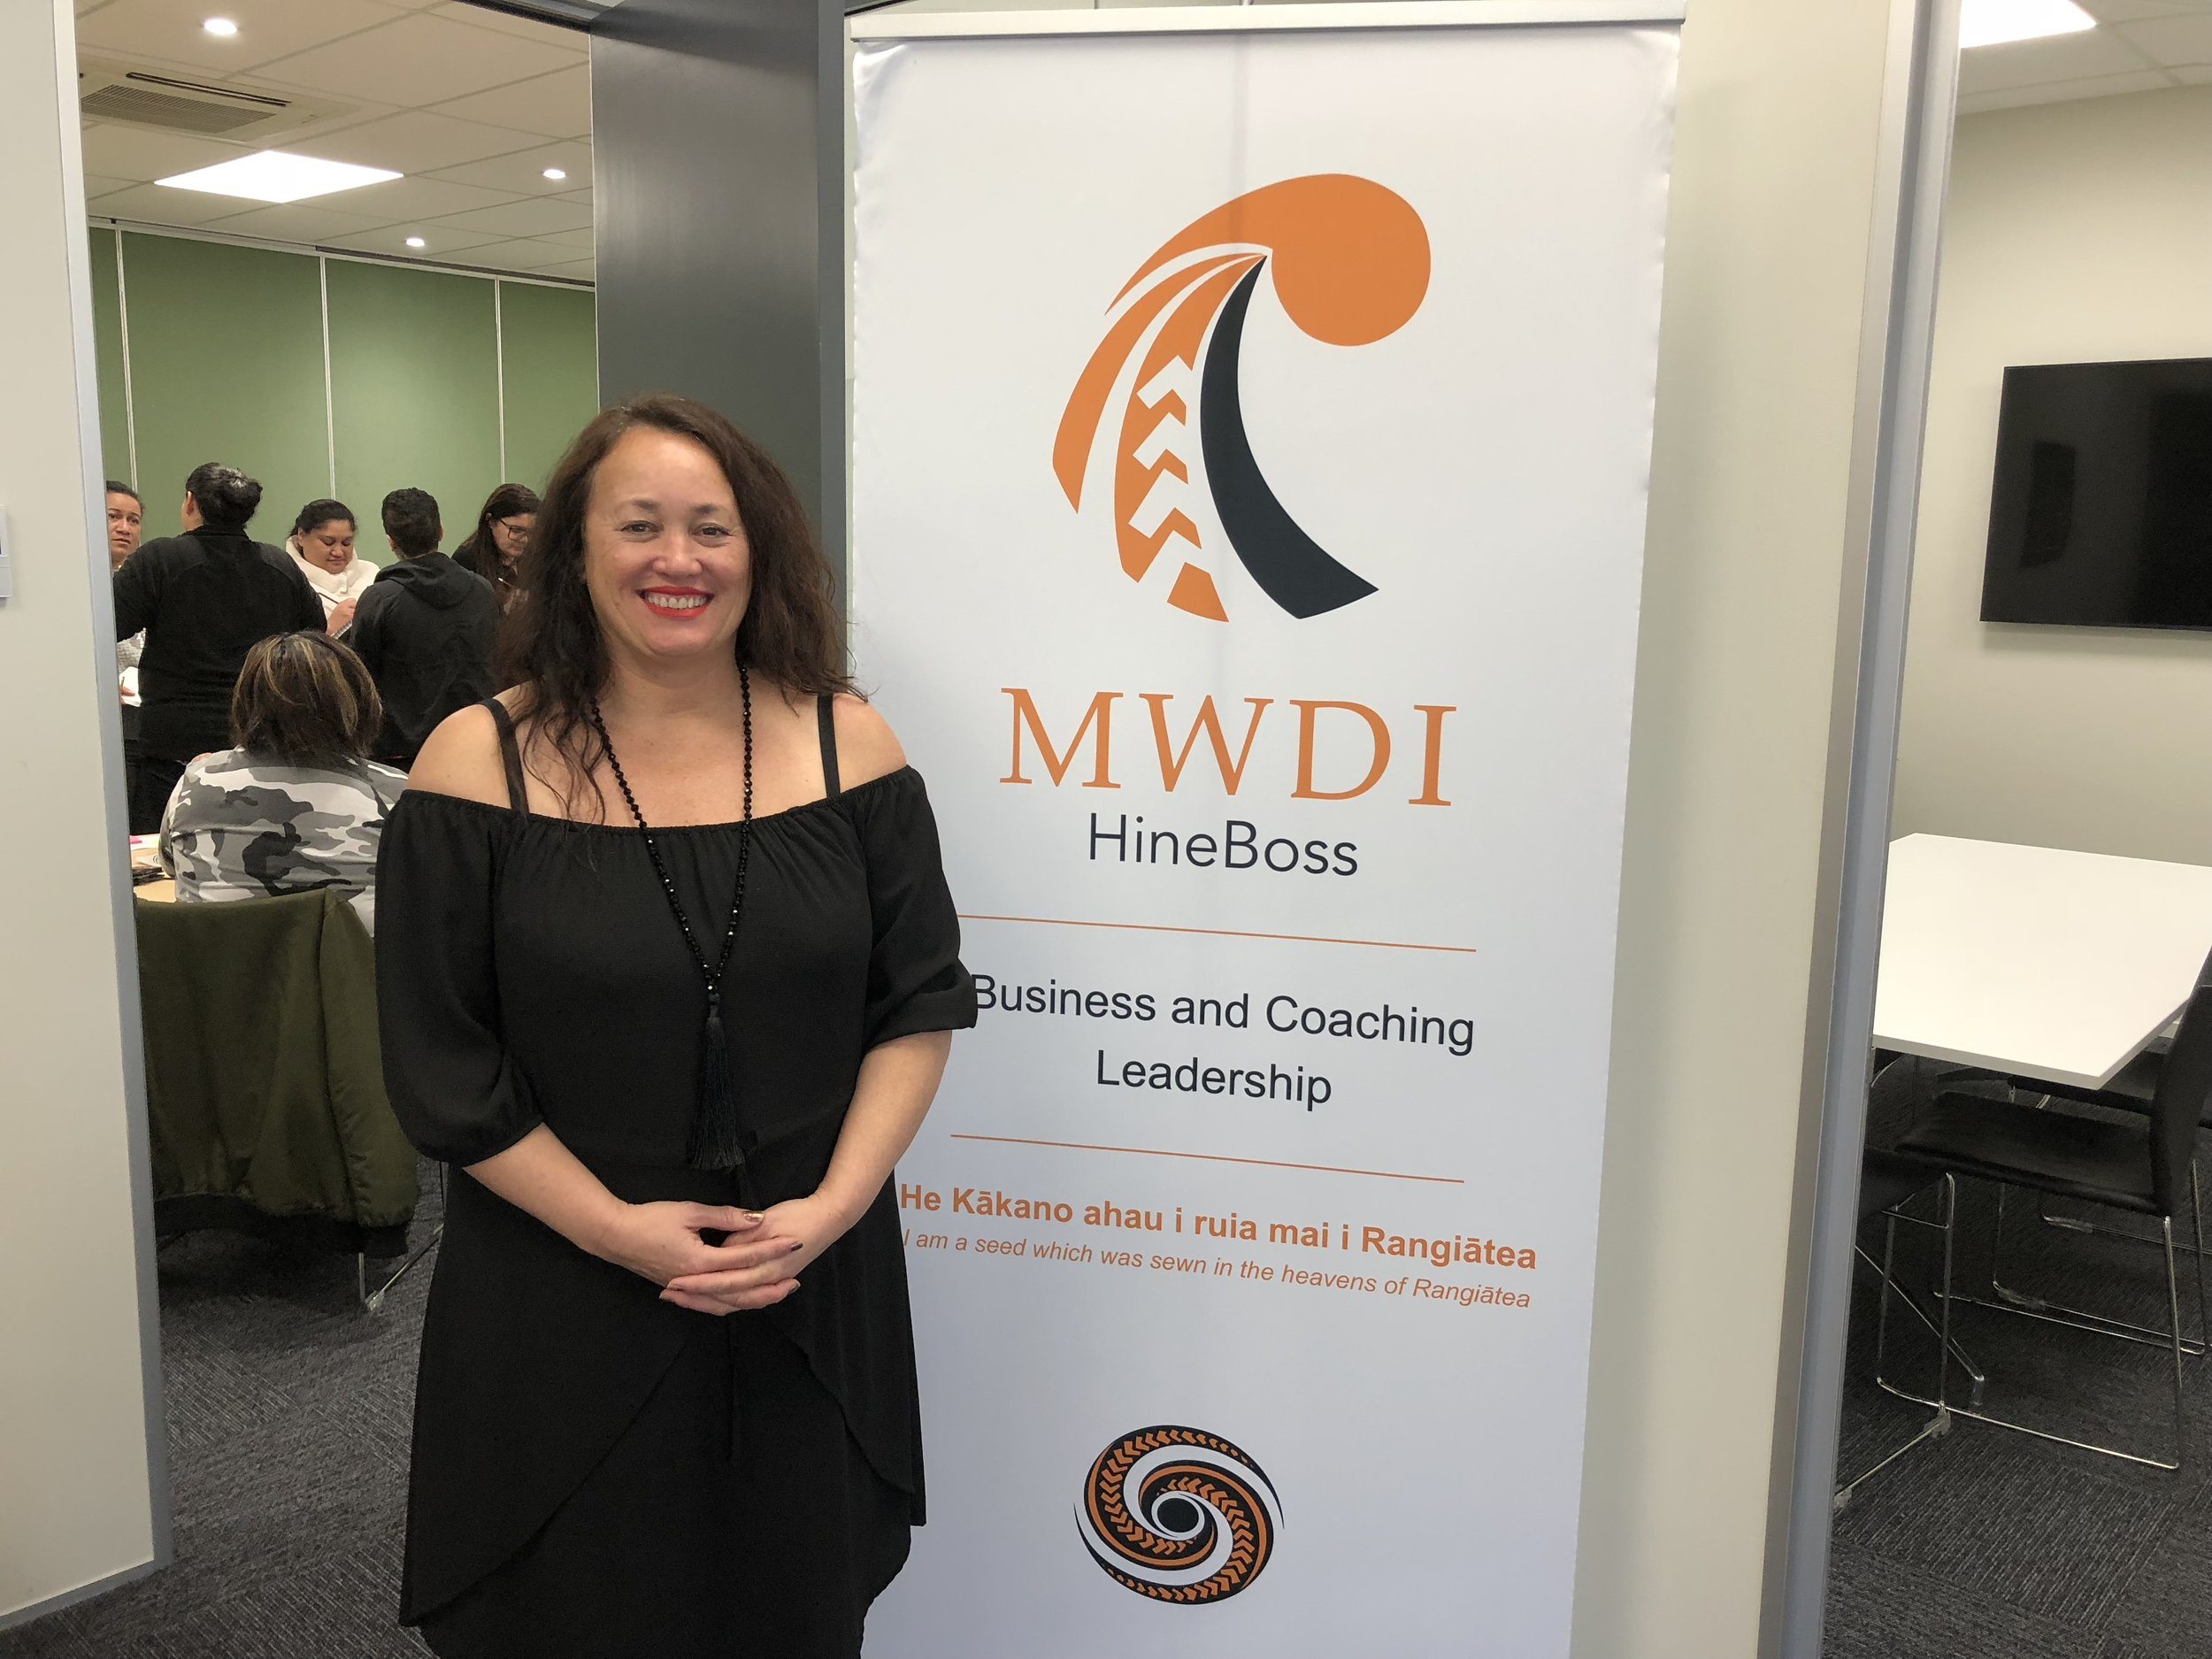 MWDI - I have a coaching contract with MWDI (Maori Women's Development Inc) to empower, educate and inspire Wahine Maori in their personal & business economic development and sustainability. It is incredibly inspiring working within my own culture.